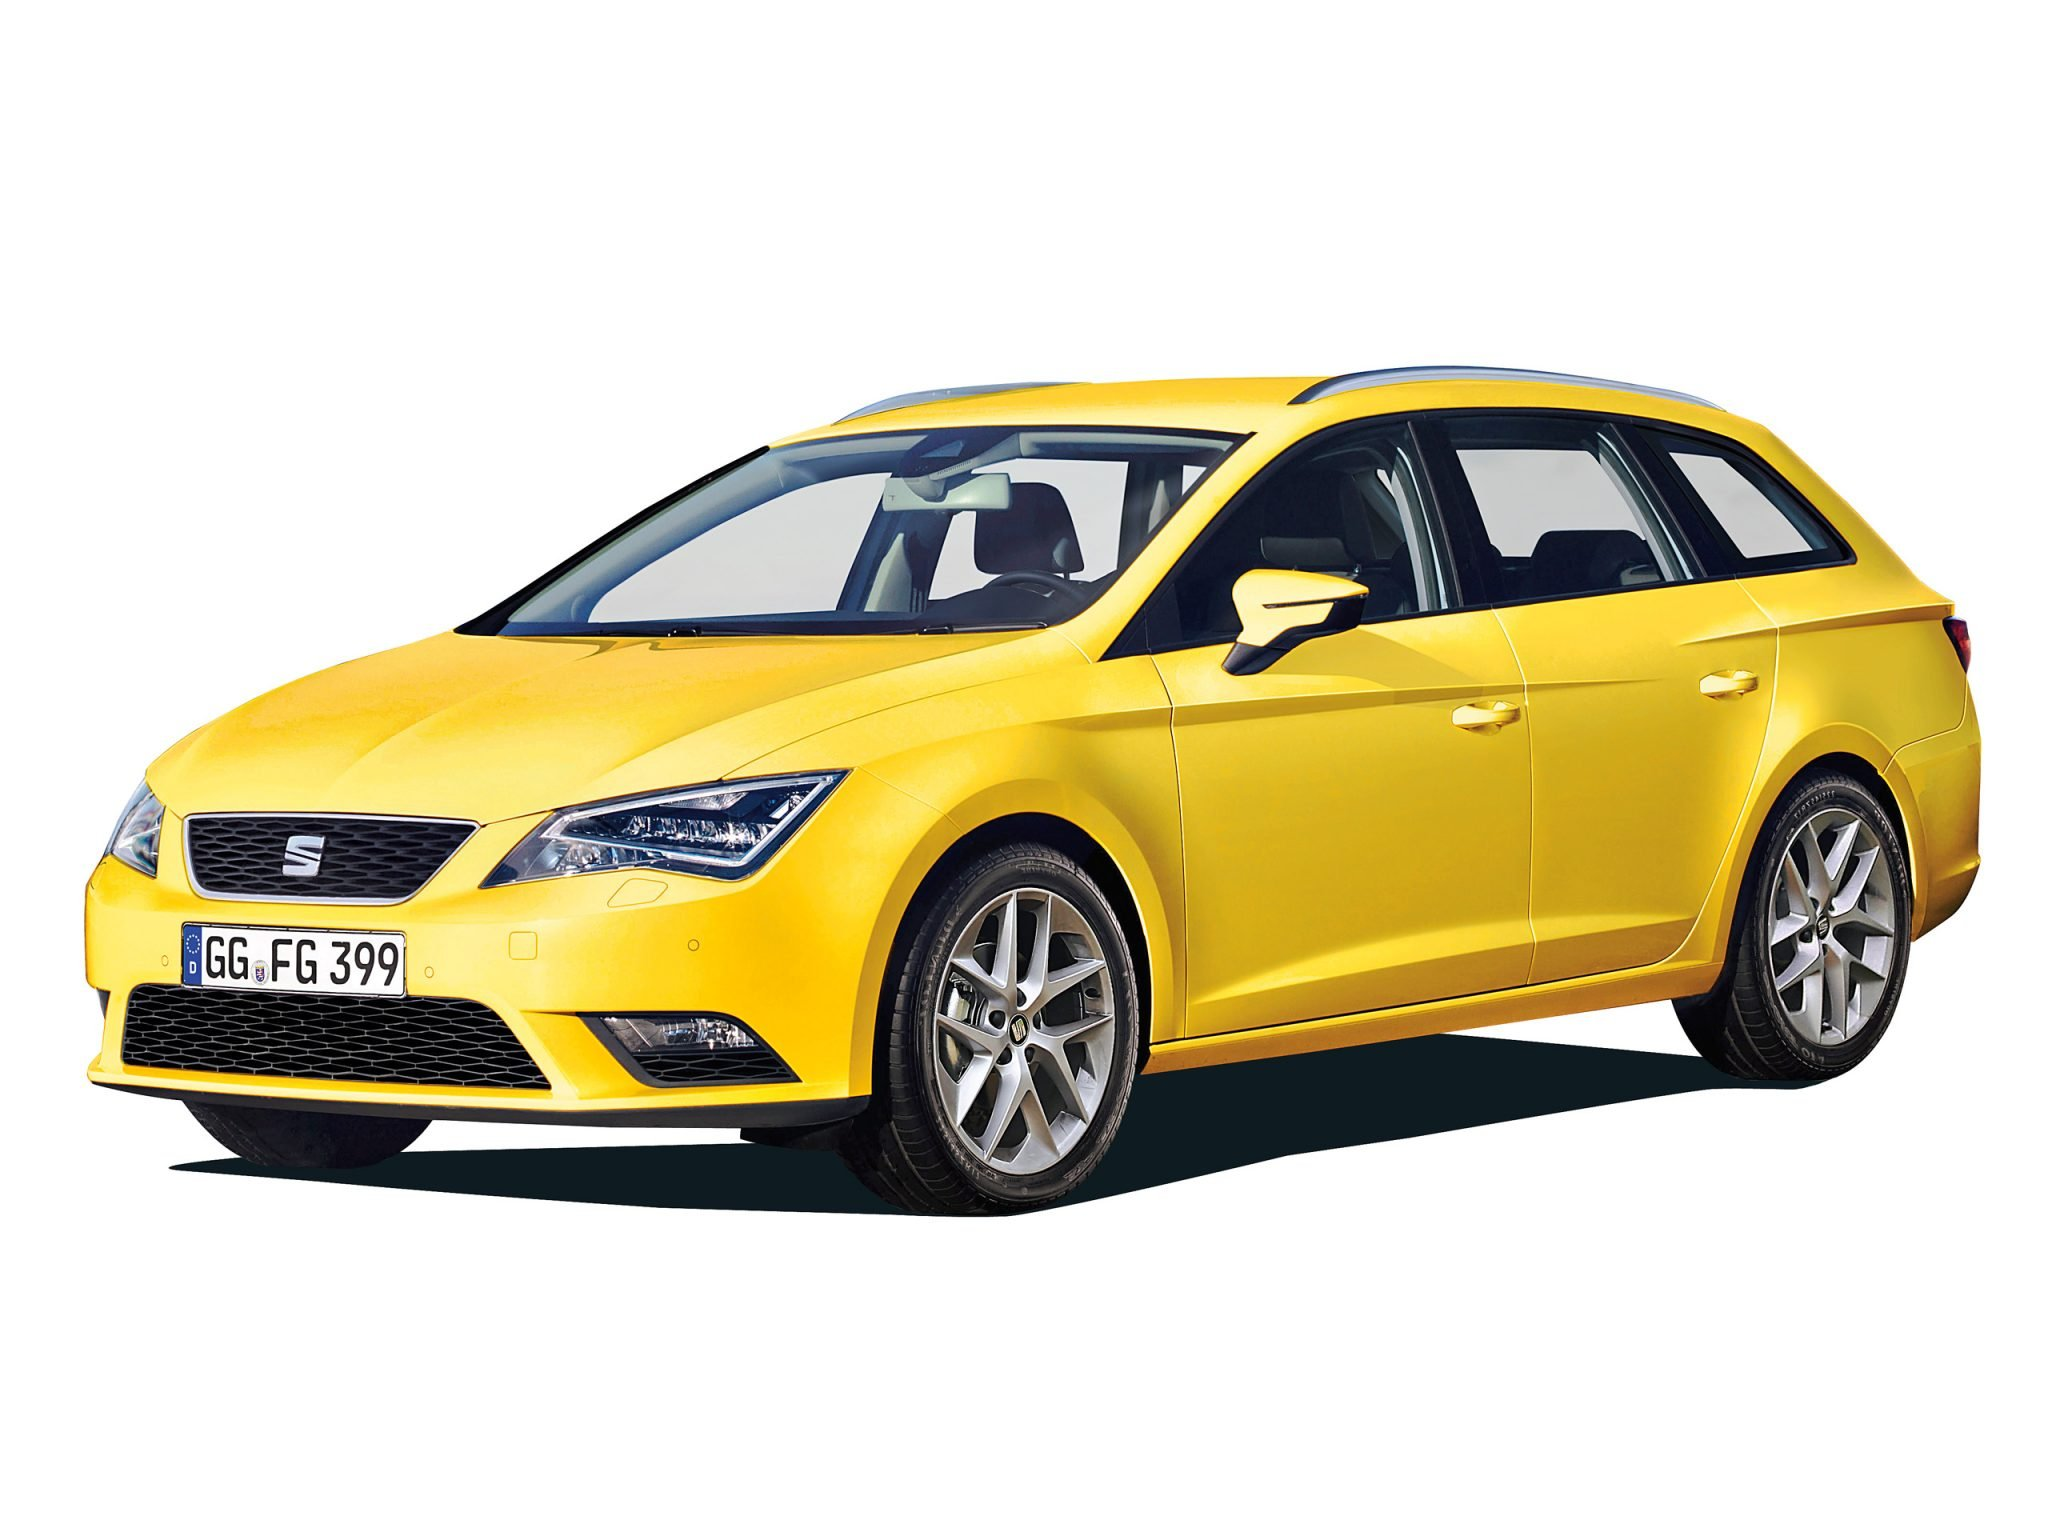 new seat leon st estate pictures burntech tv fitness product reviews fitness gadgets. Black Bedroom Furniture Sets. Home Design Ideas